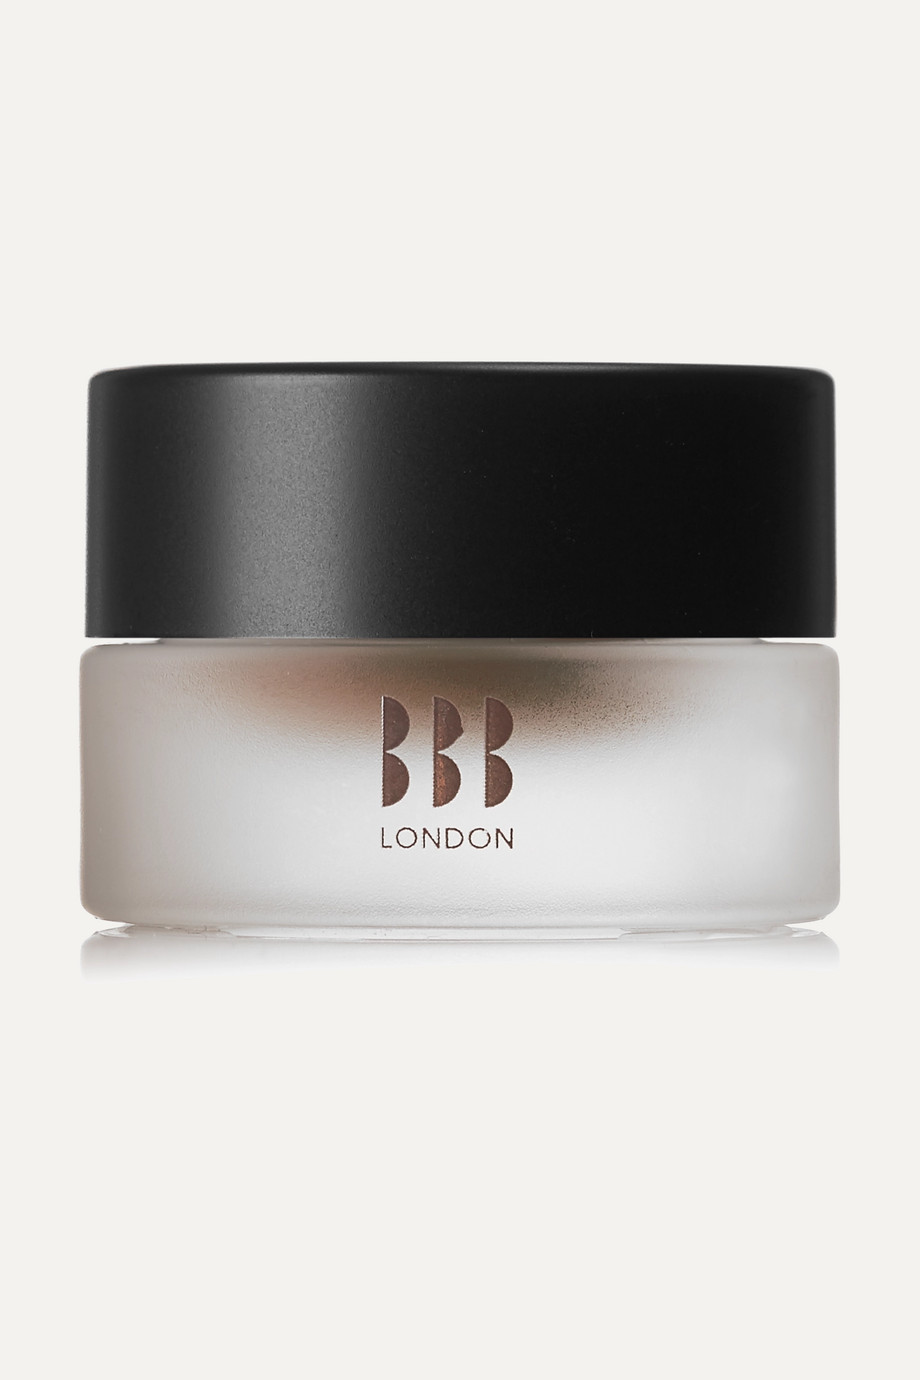 BBB LONDON Brow Sculpting Pomade - Saffron